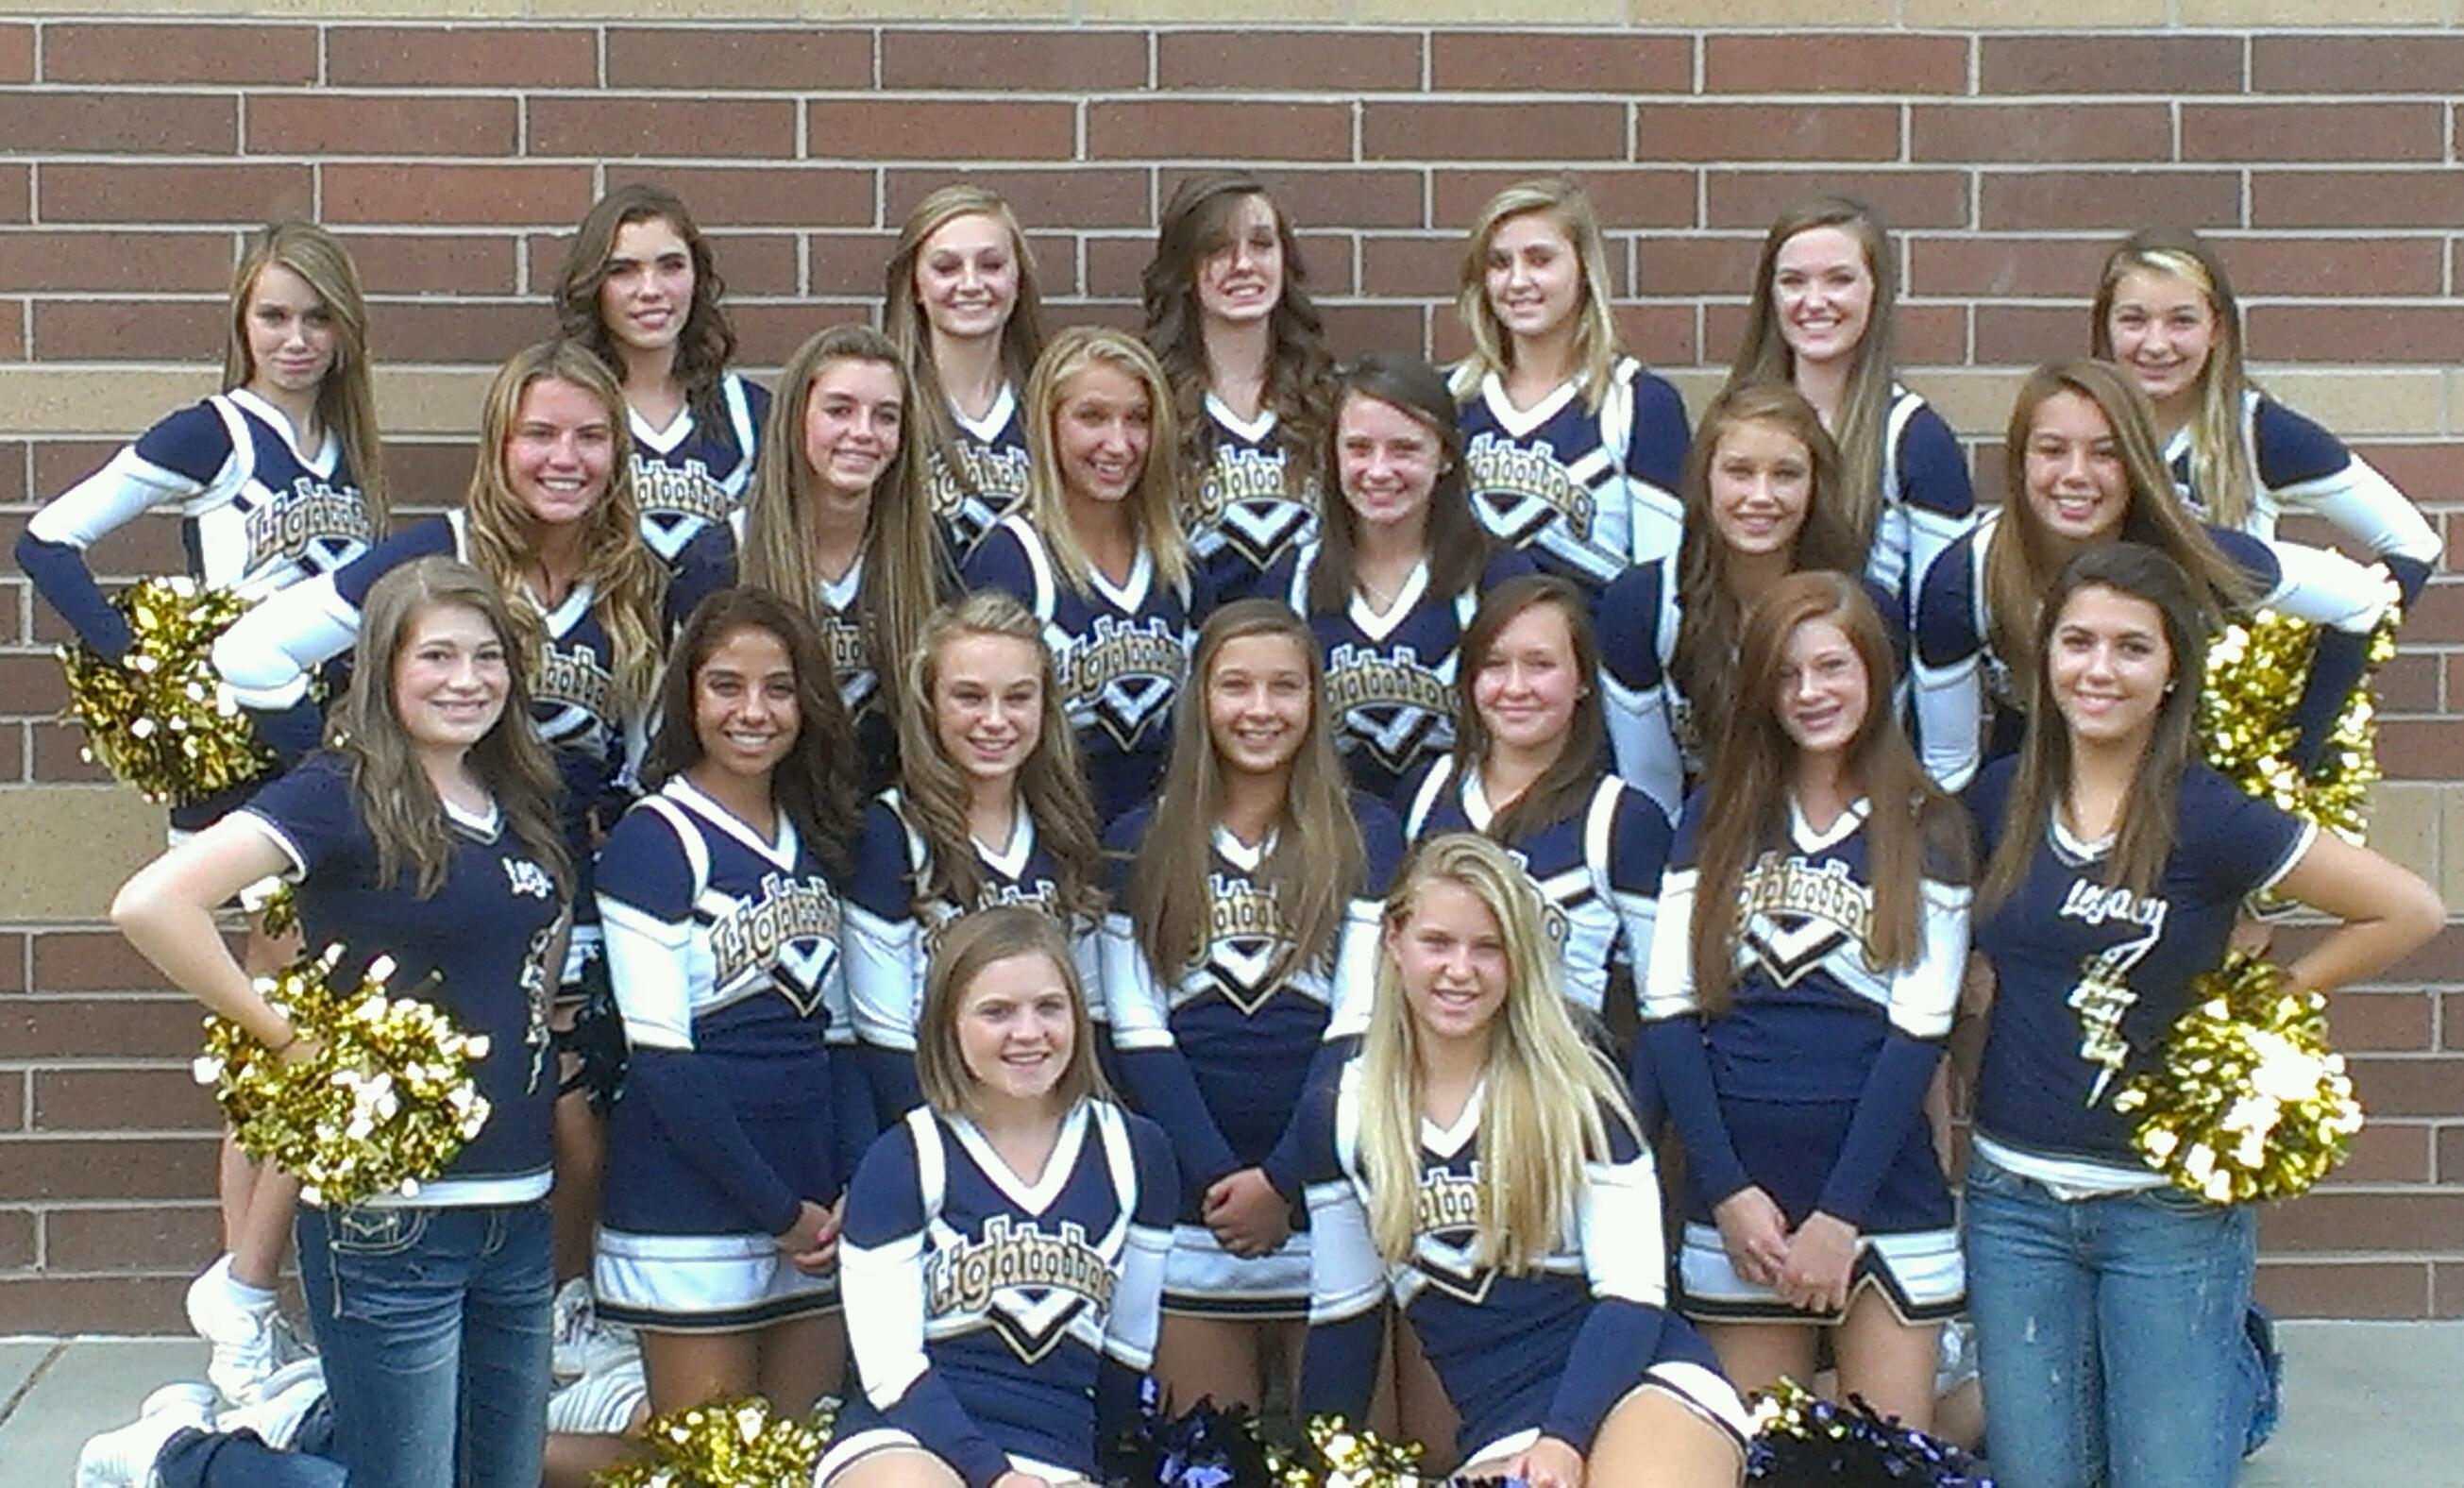 Legacy High School Cheerleaders of Broomfield, CO